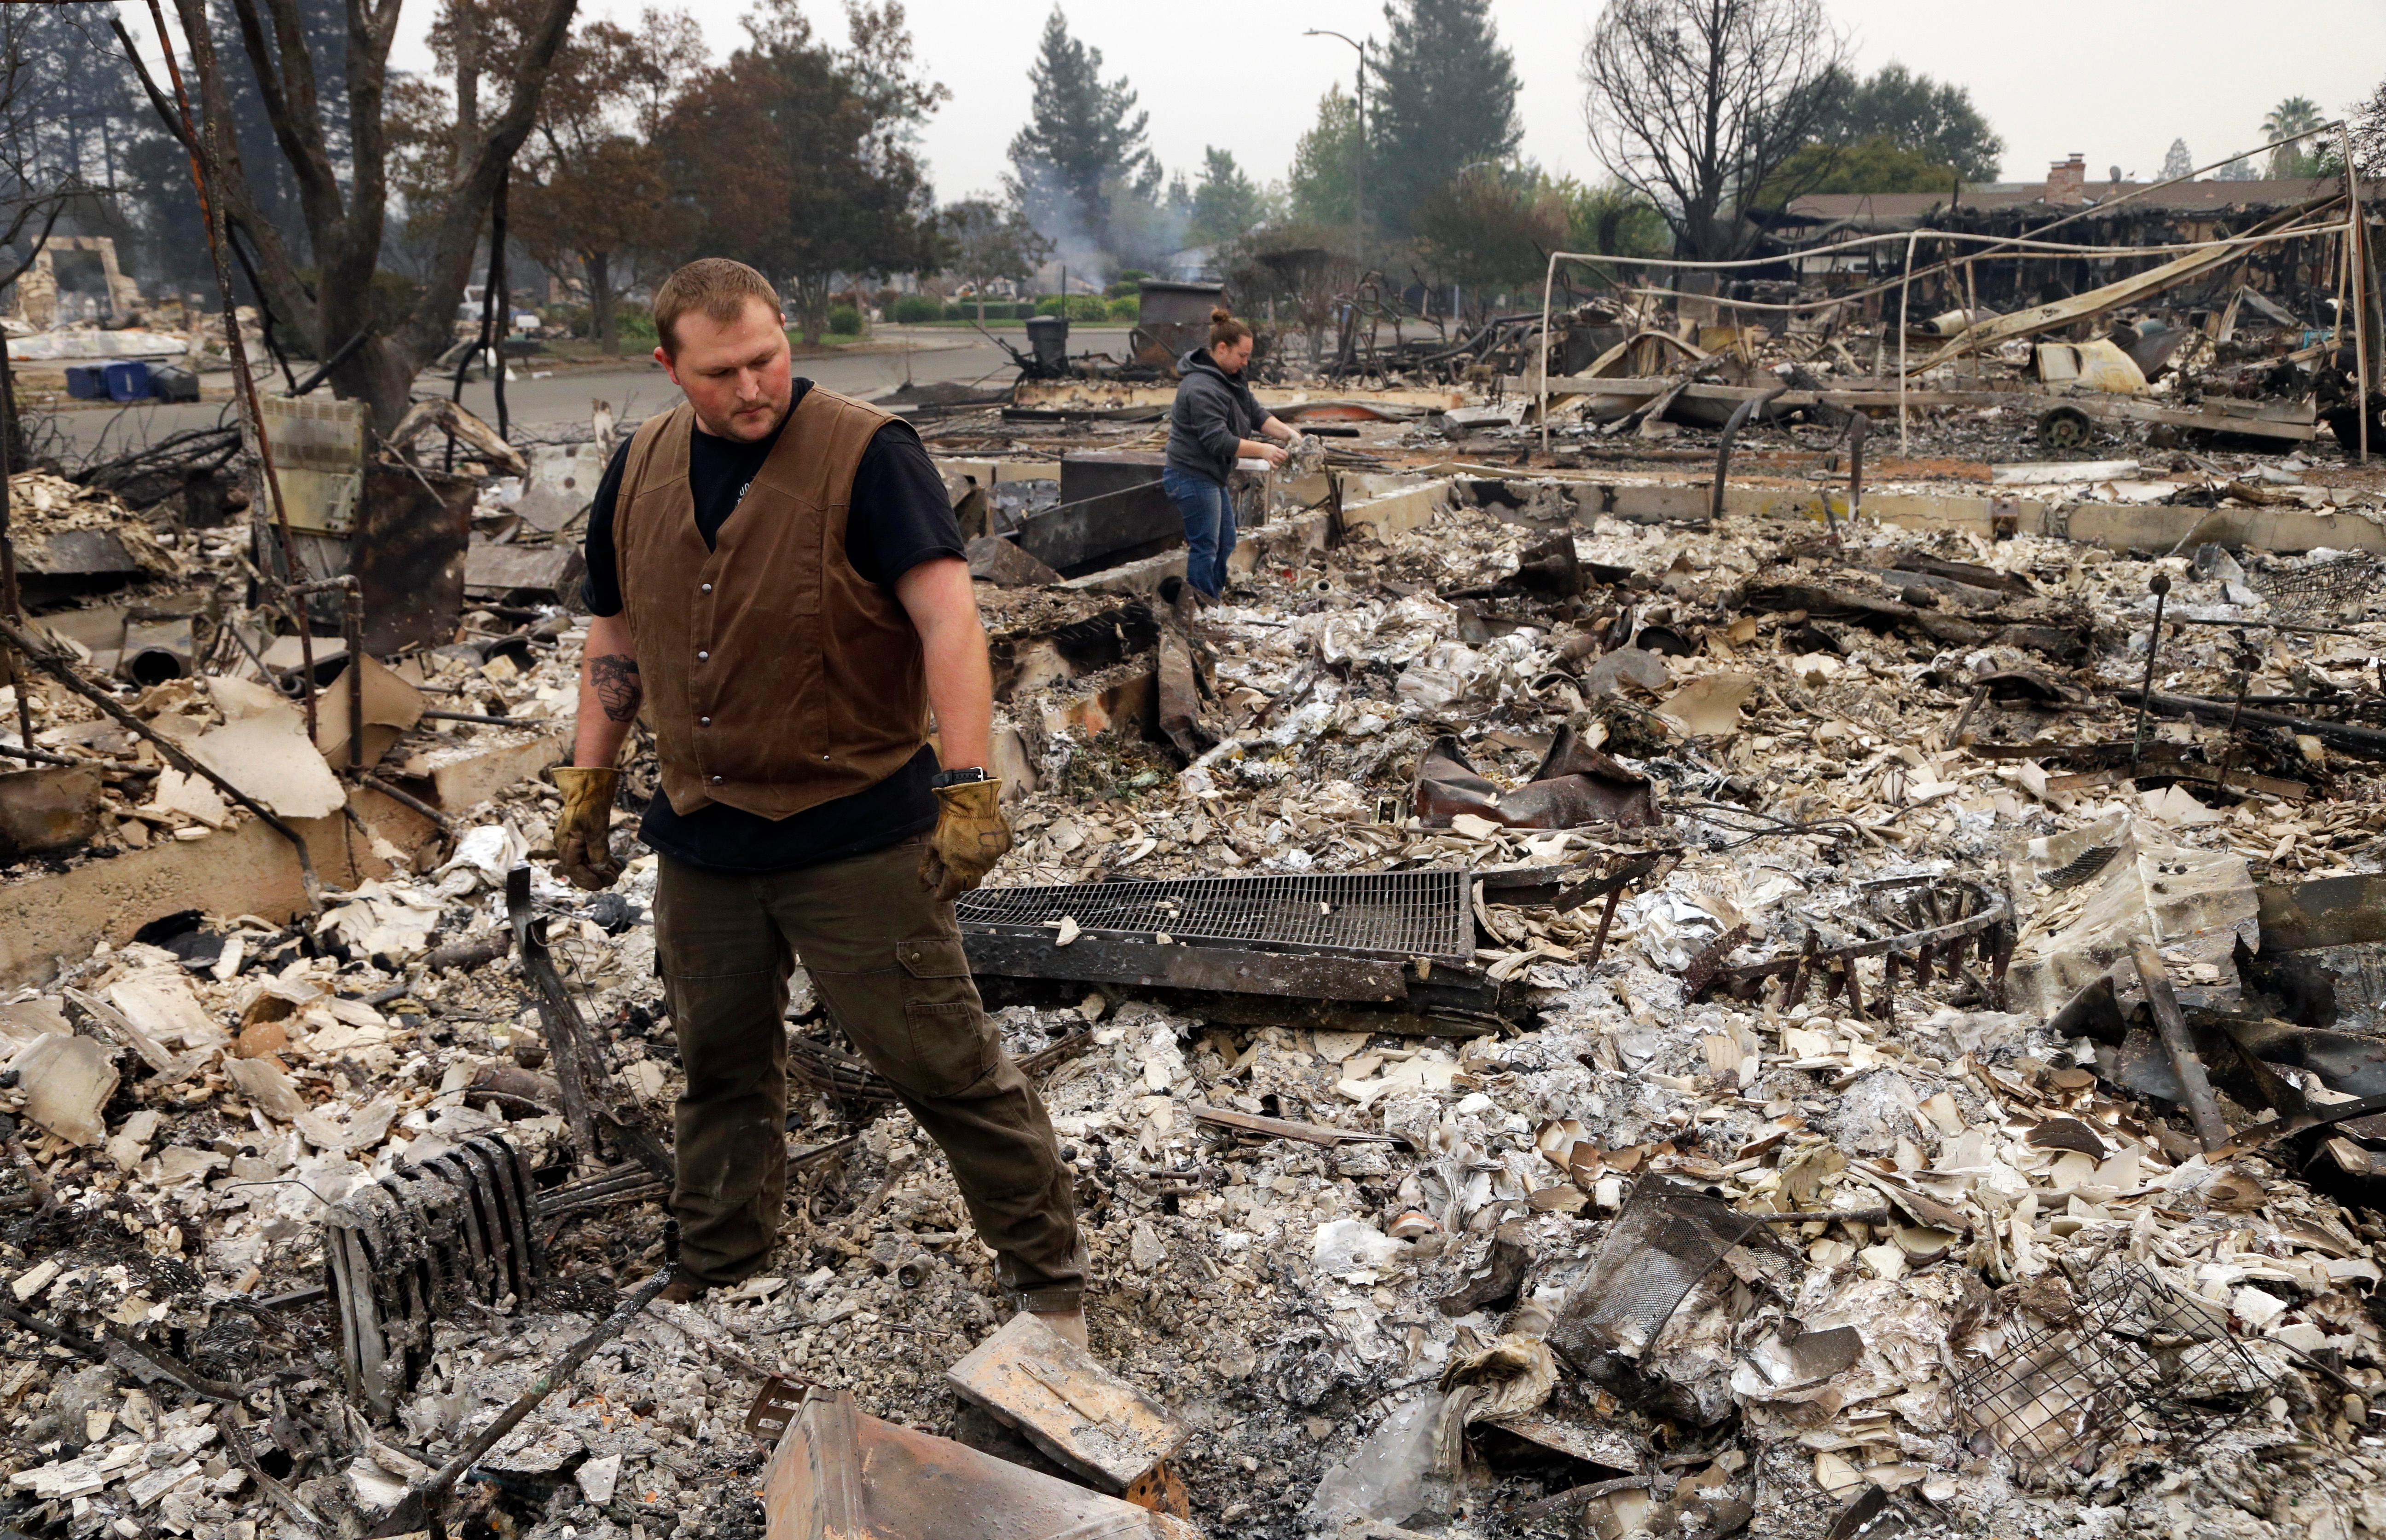 Luke Baier, left, and his wife Gina Baier look through the remains of their home in the Coffey Park area of Santa Rosa, Calif., on Tuesday, Oct. 10, 2017. An onslaught of wildfires across a wide swath of Northern California broke out almost simultaneously then grew exponentially, swallowing up properties from wineries to trailer parks and tearing through both tiny rural towns and urban subdivisions. (AP Photo/Ben Margot)